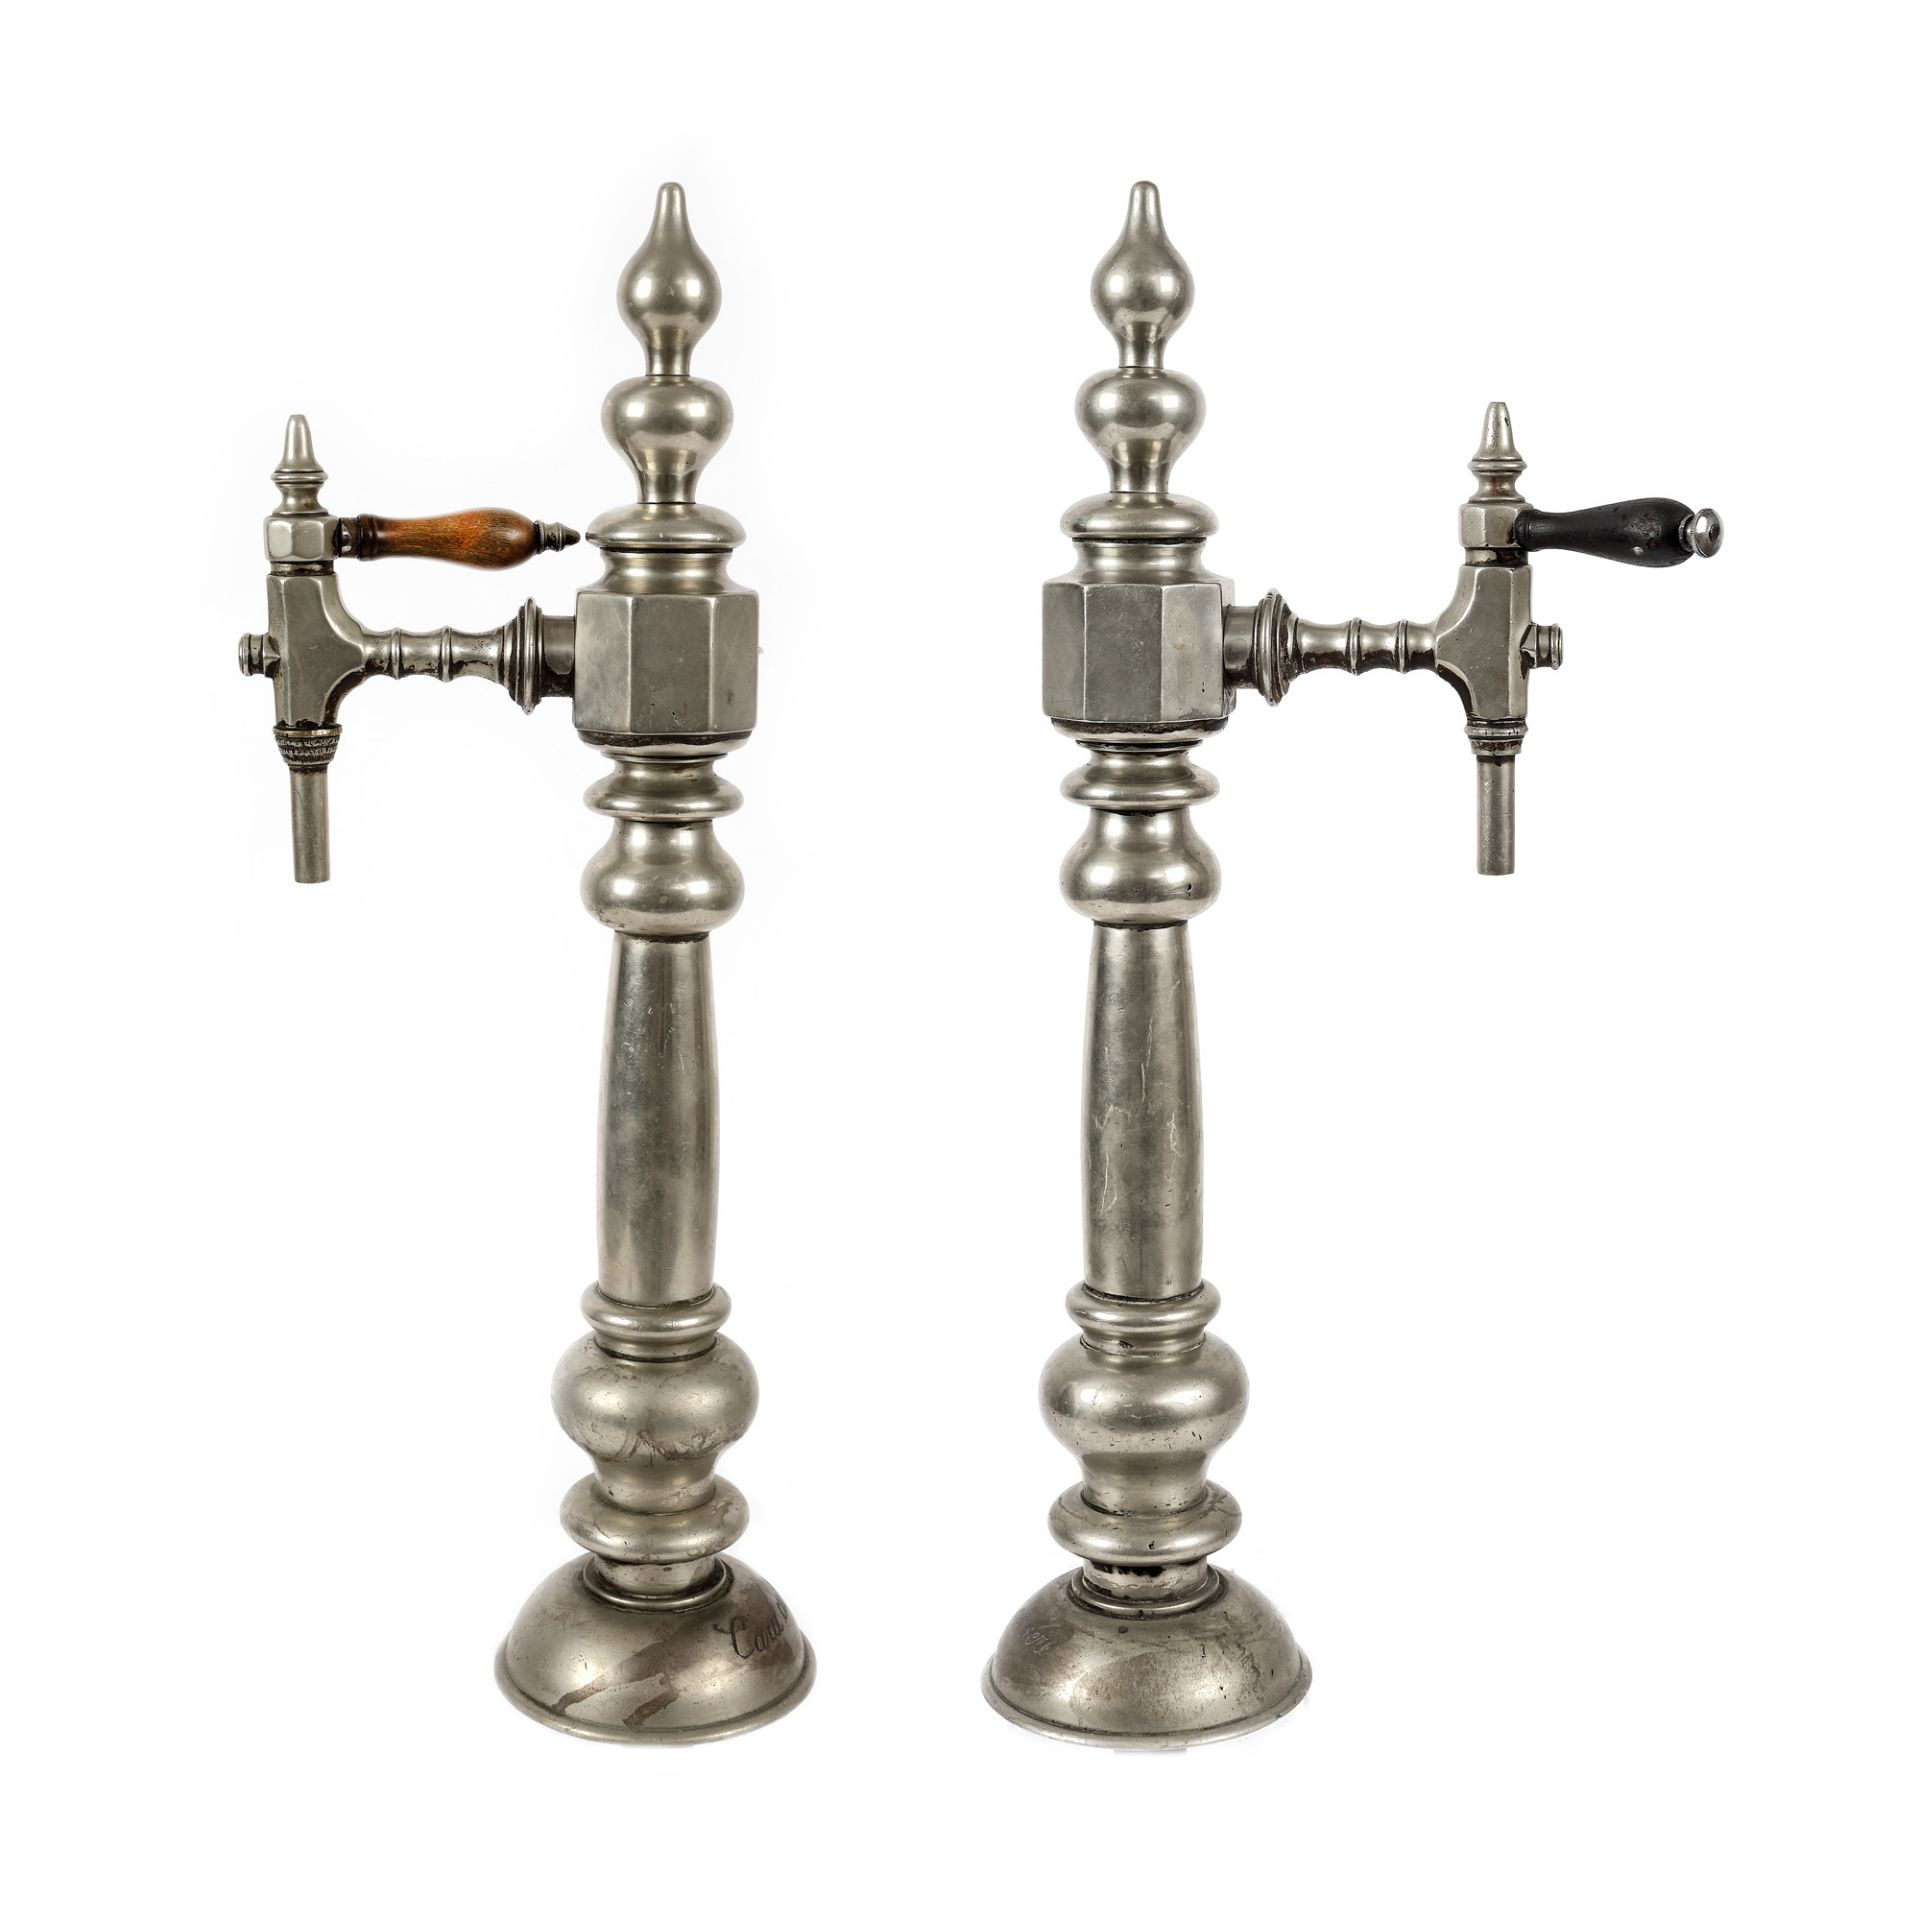 Two beer dispensers, with Caru cu bere restaurant brand, early 20th century